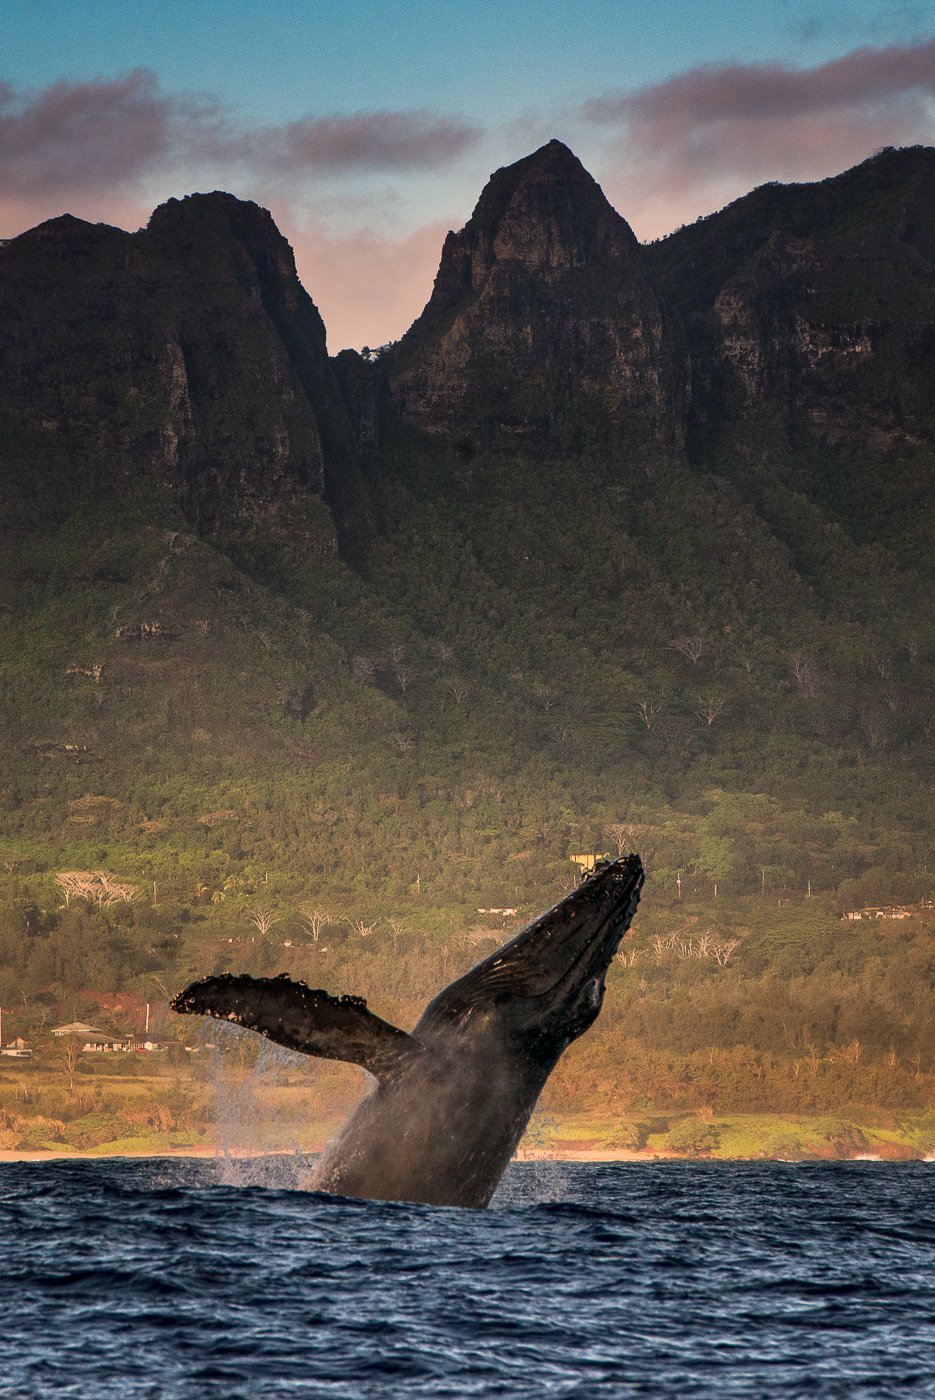 humpback whale breach with mountains in the background hawaii